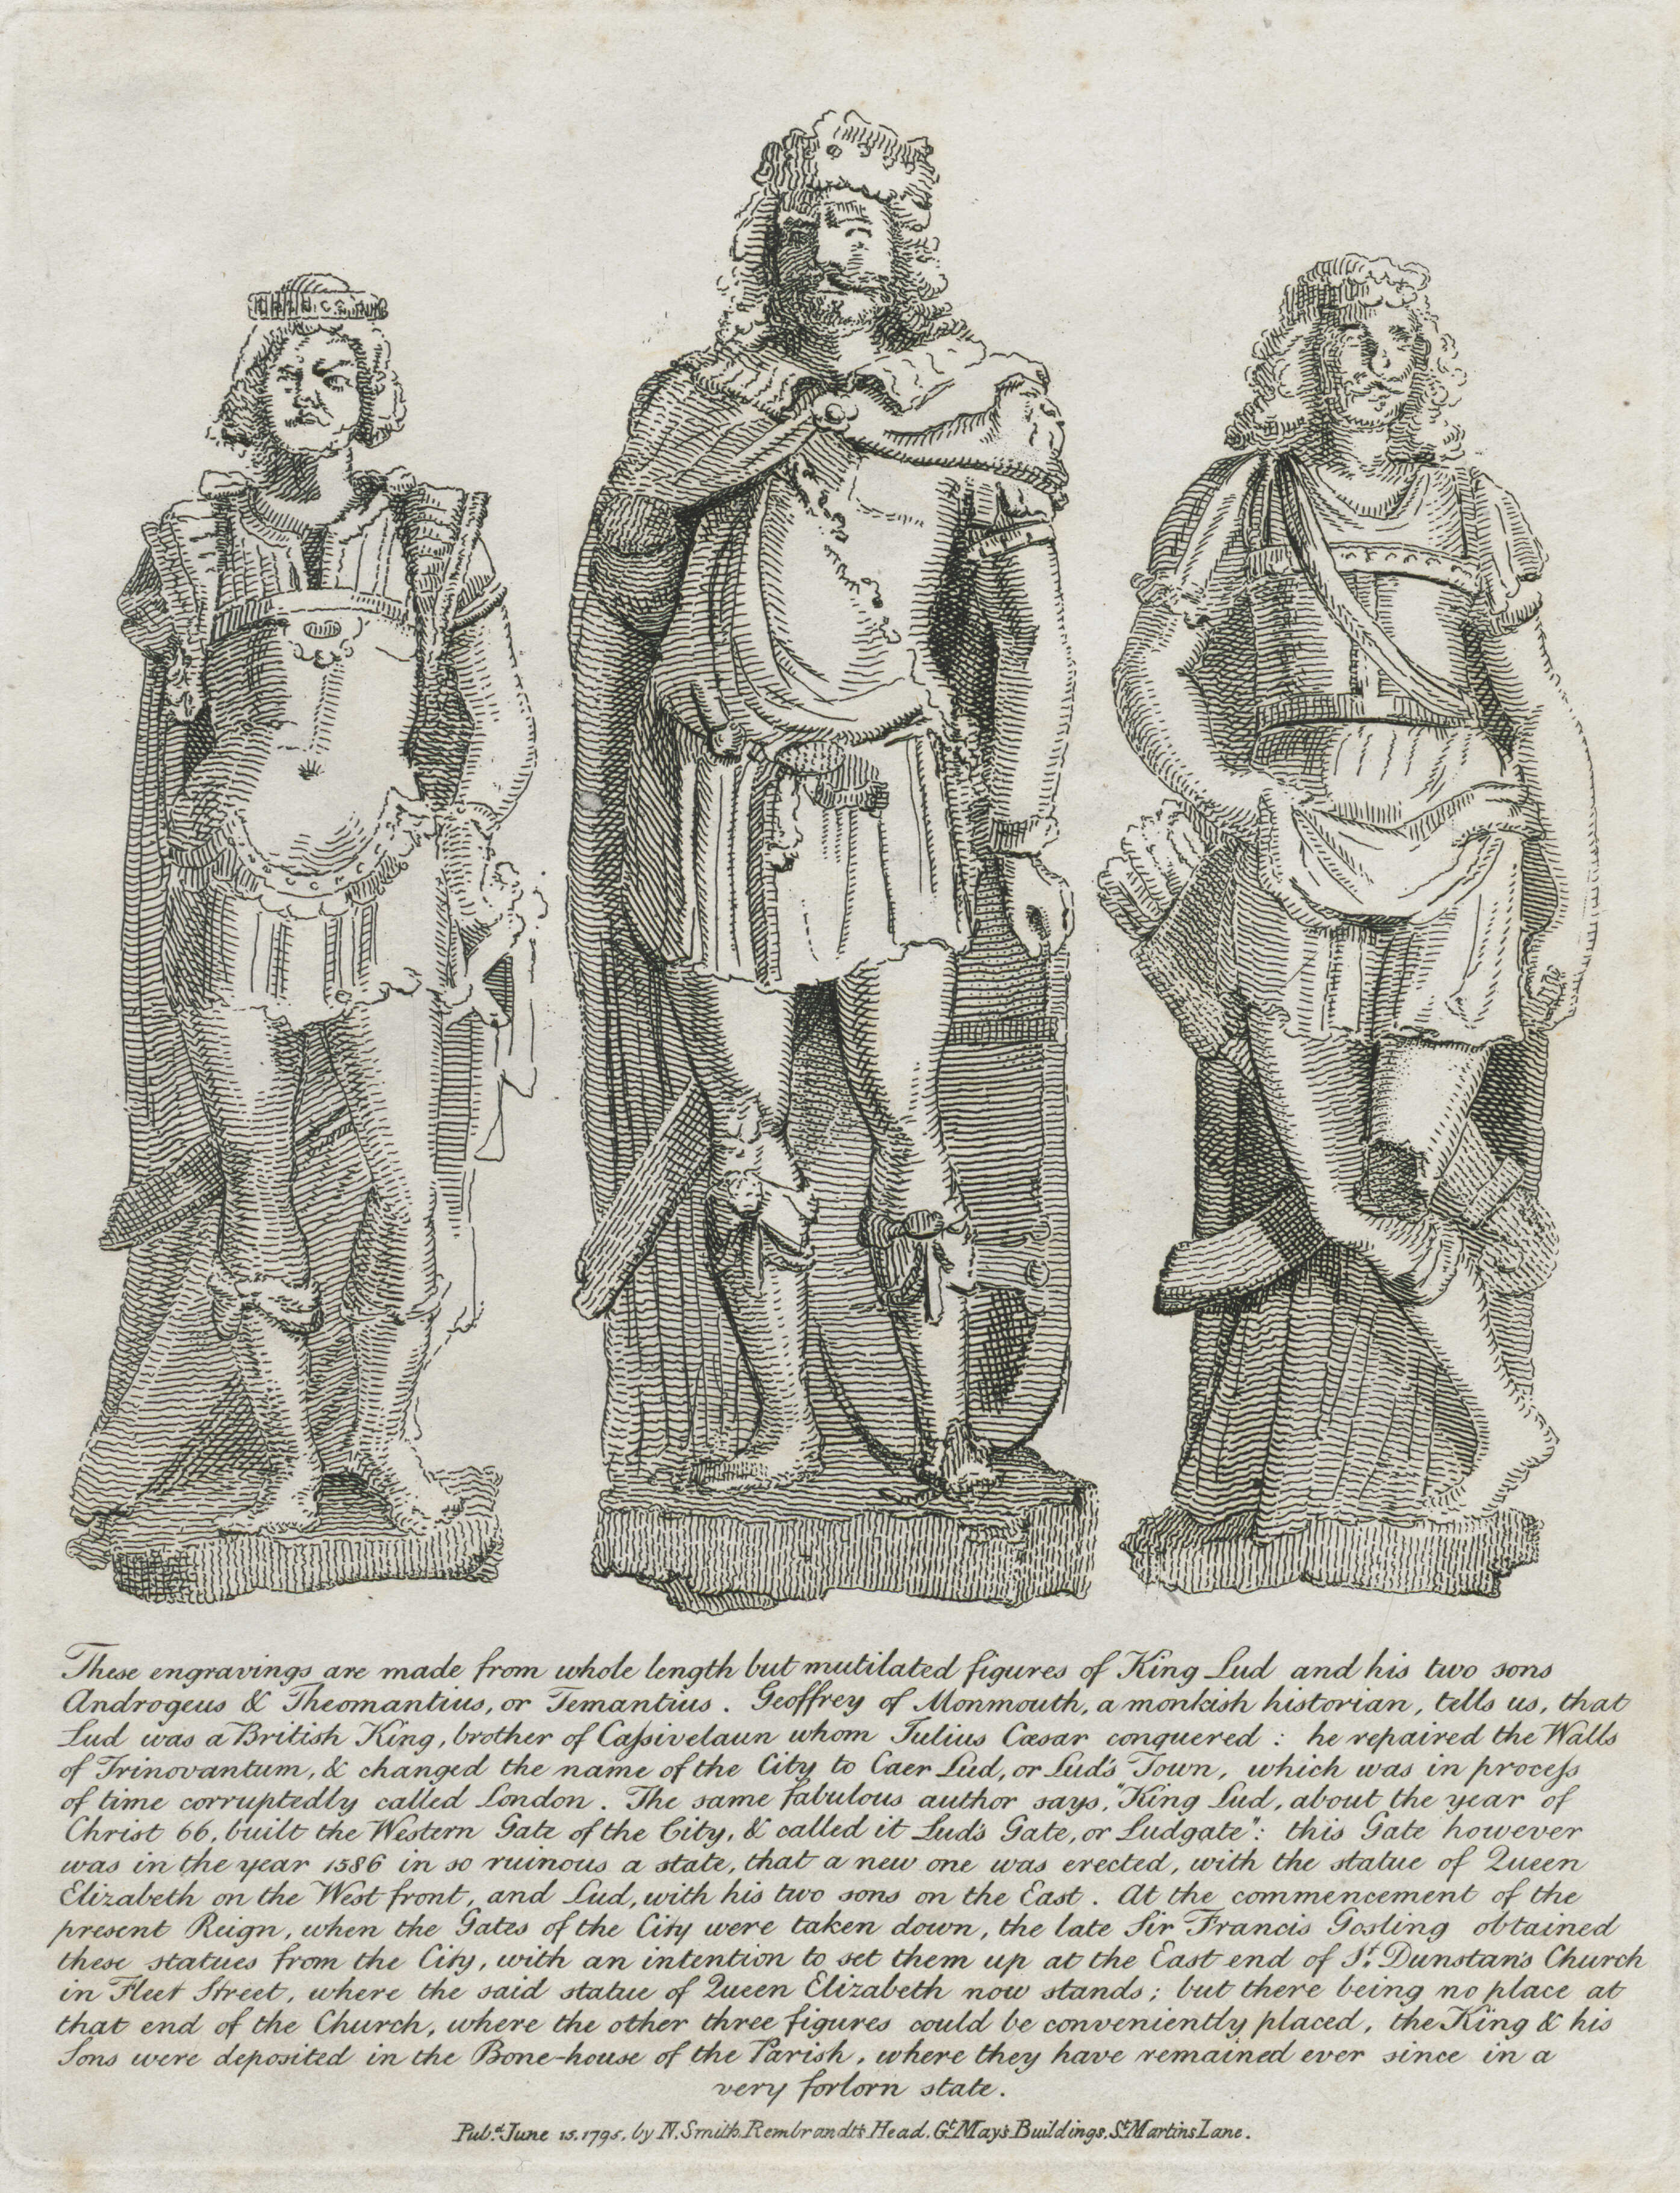 62-engravings-of-king-lud-and-his-sons-in-the-bone-house-of-st-dunstans-parish-fleet-street